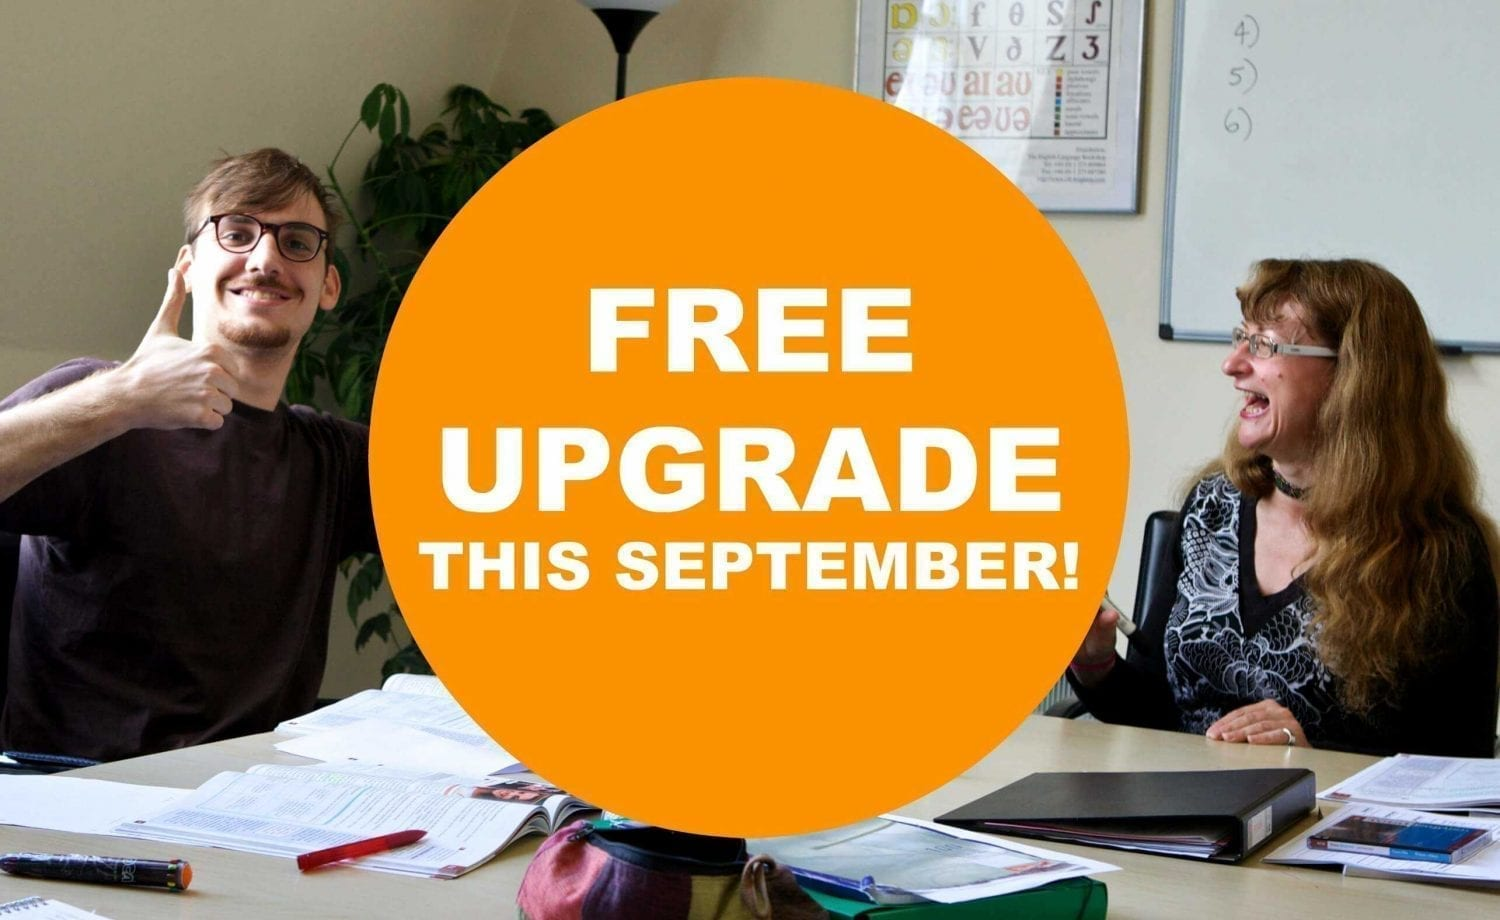 [AGENT EXCLUSIVE] Upgrade Your Students for Free!